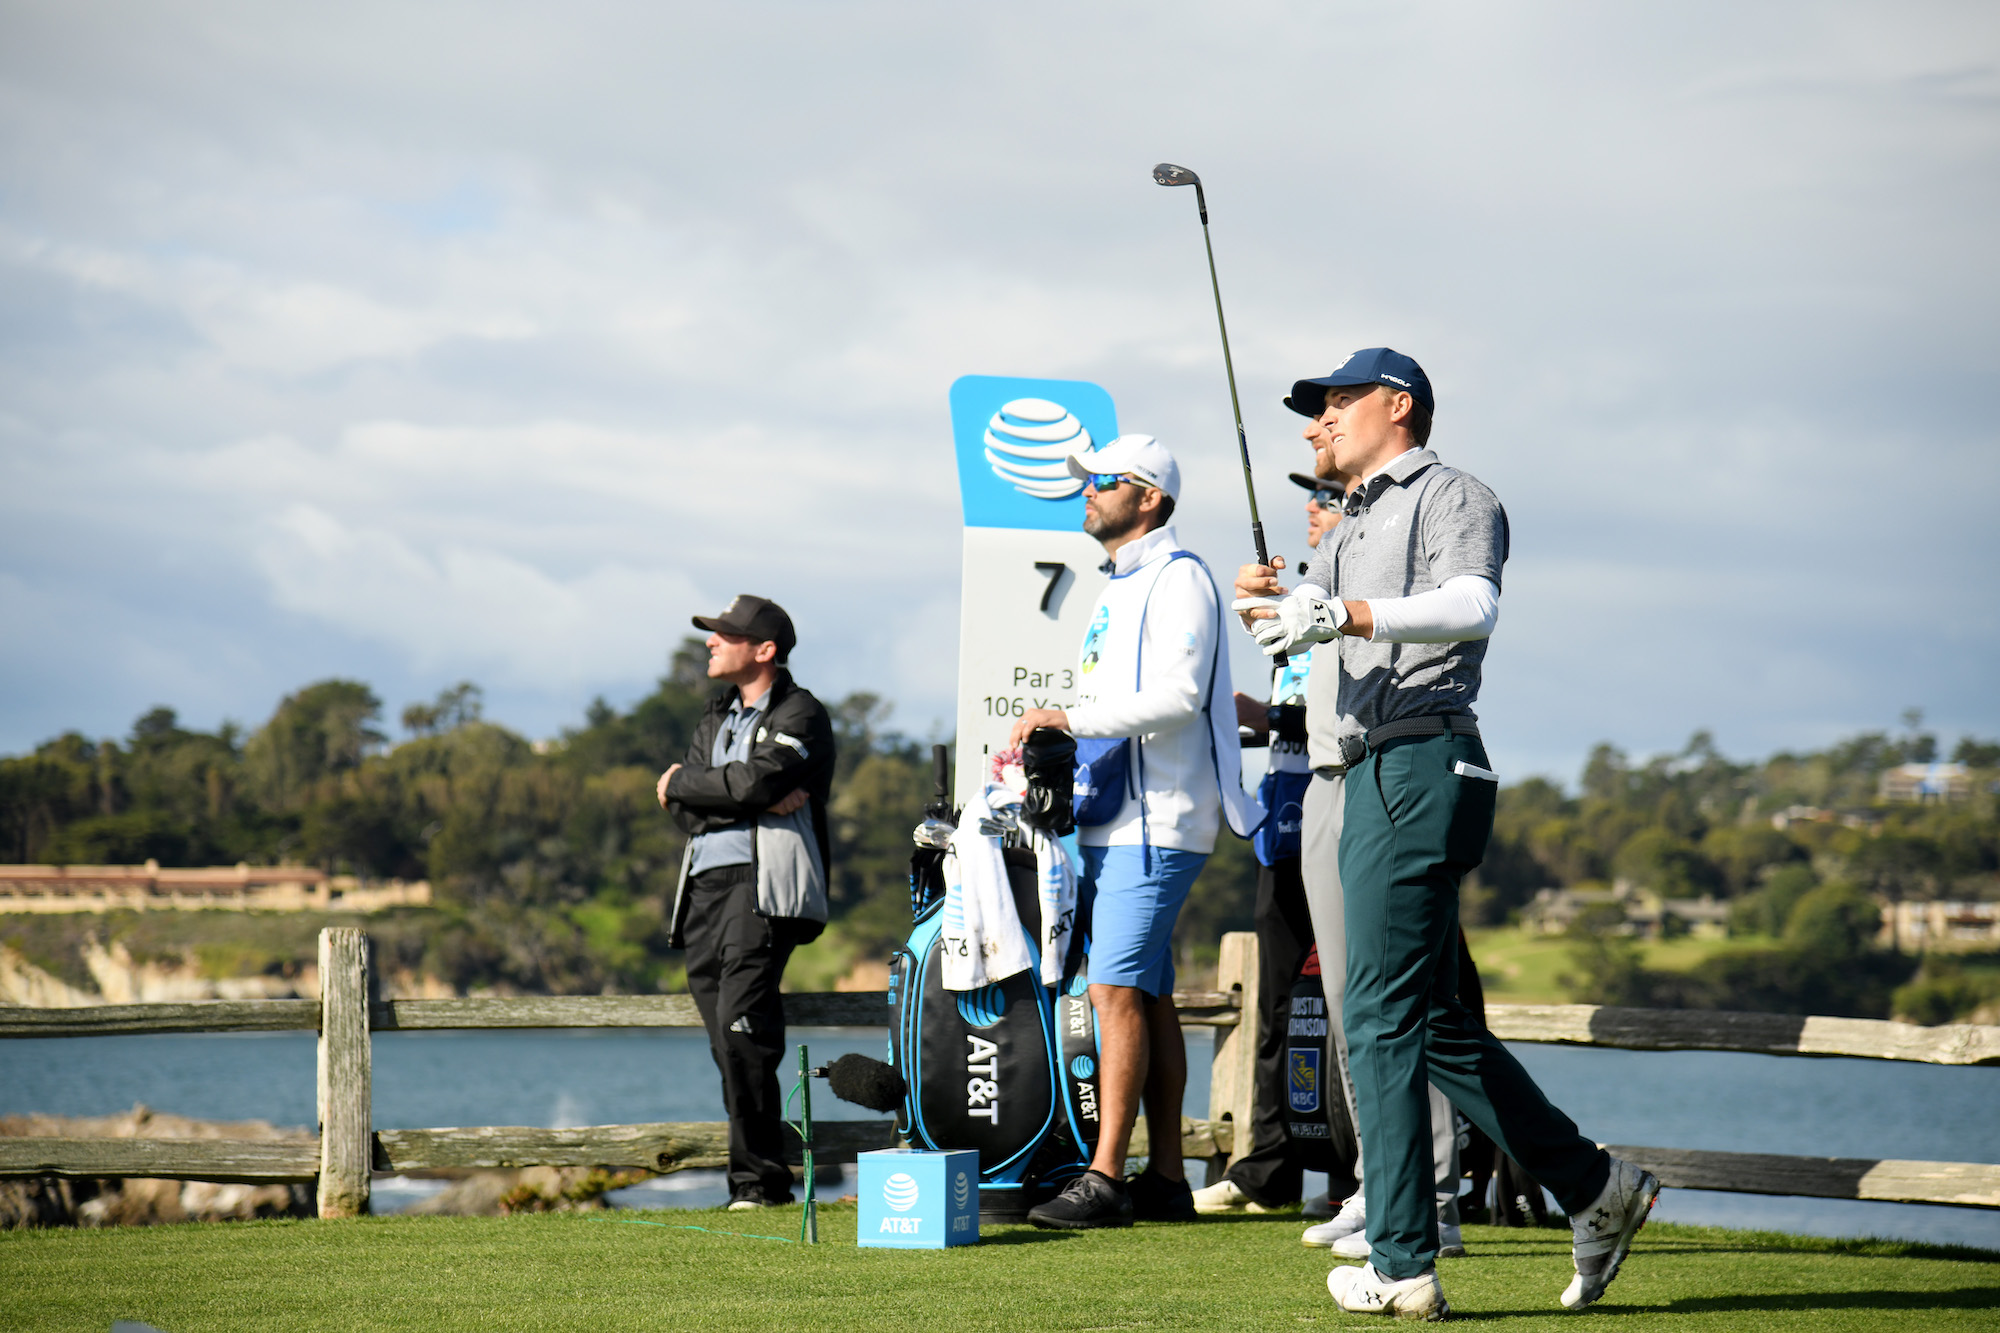 2019 AT&T Pebble Beach Pro-Am: Round 3 - Tee Shot on Par-3 No. 7